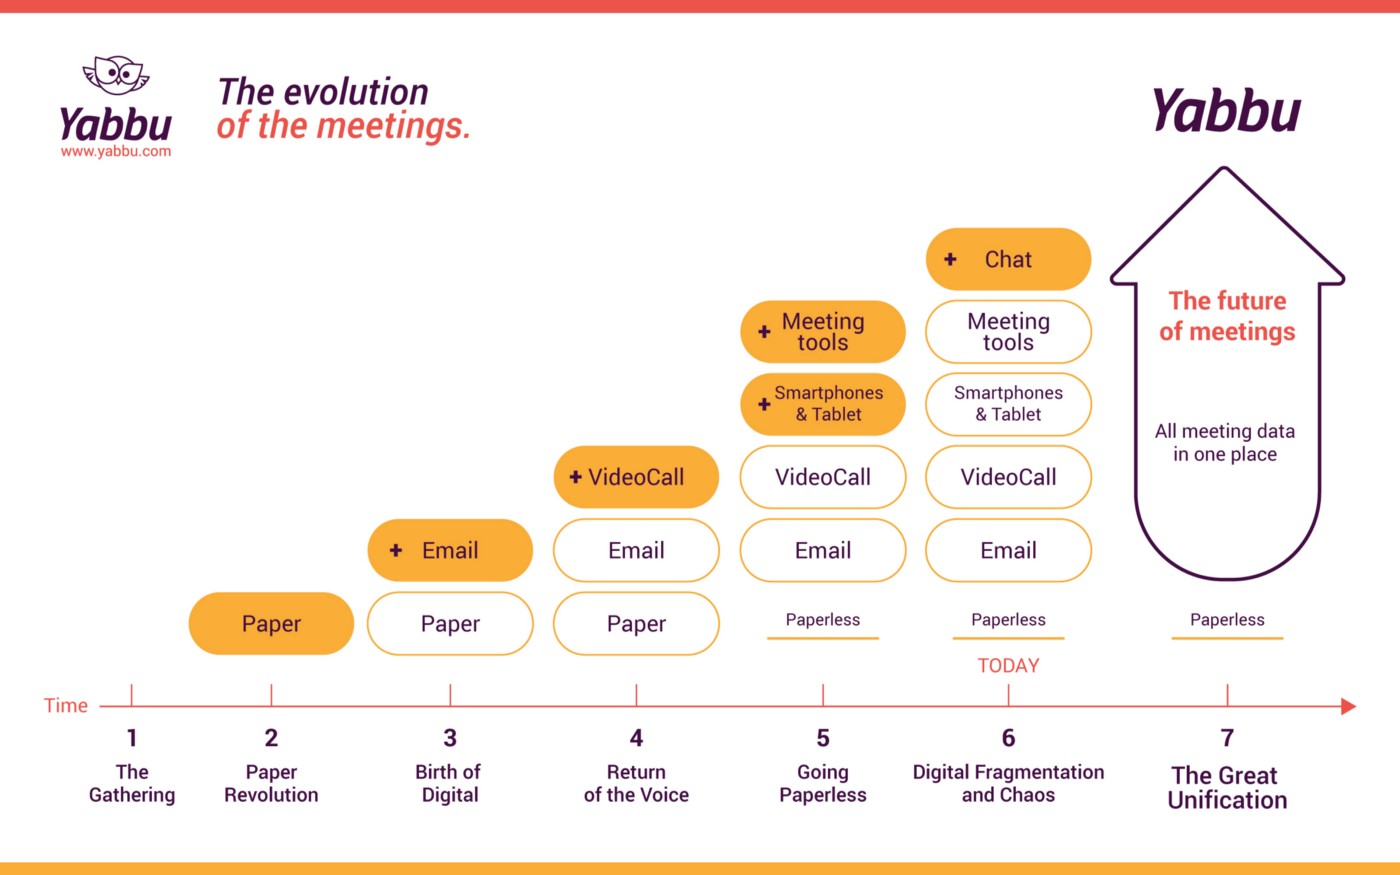 The evolution and future of meetings